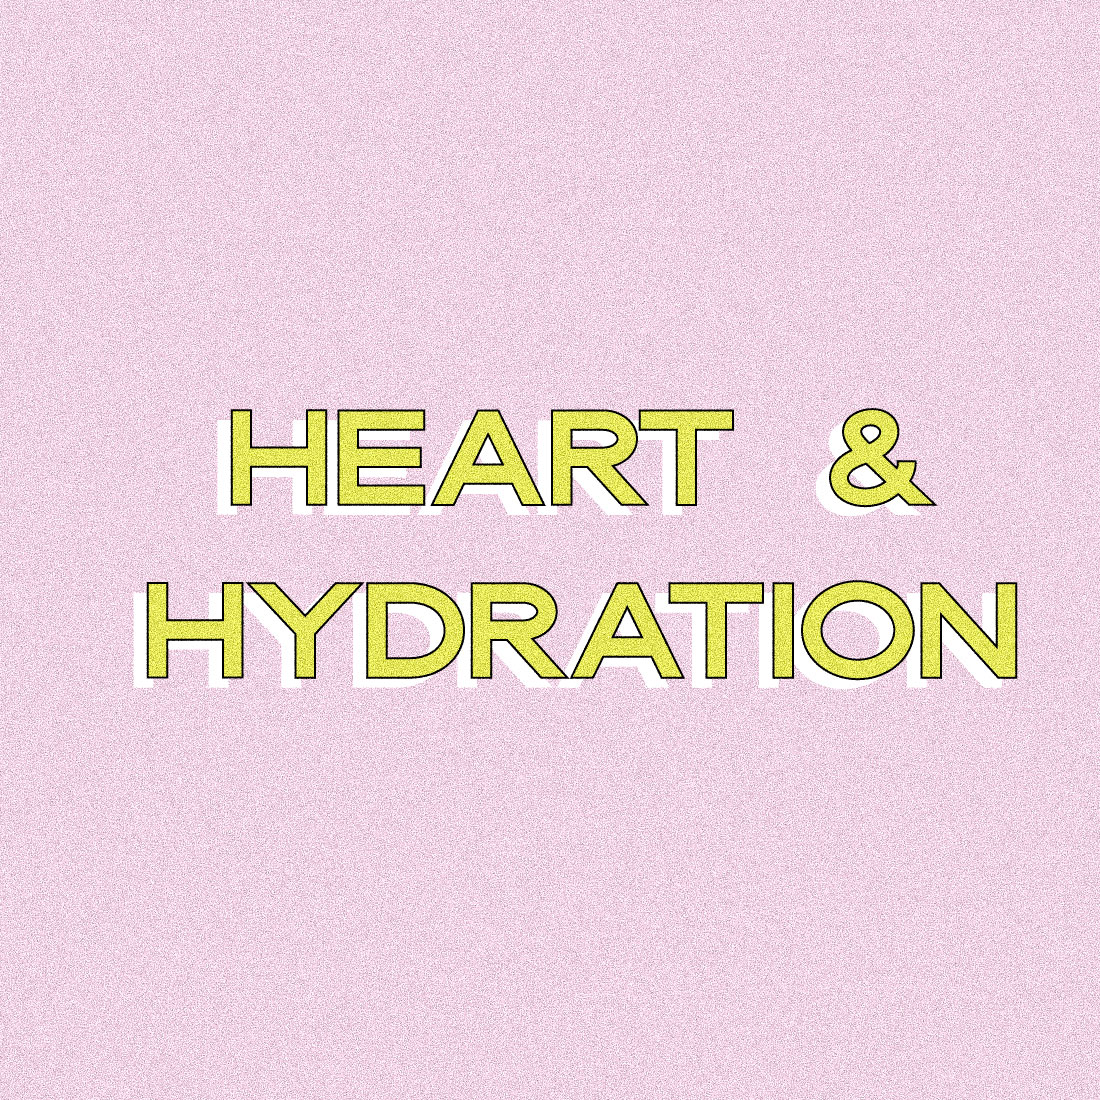 Heart & hydration rebranding